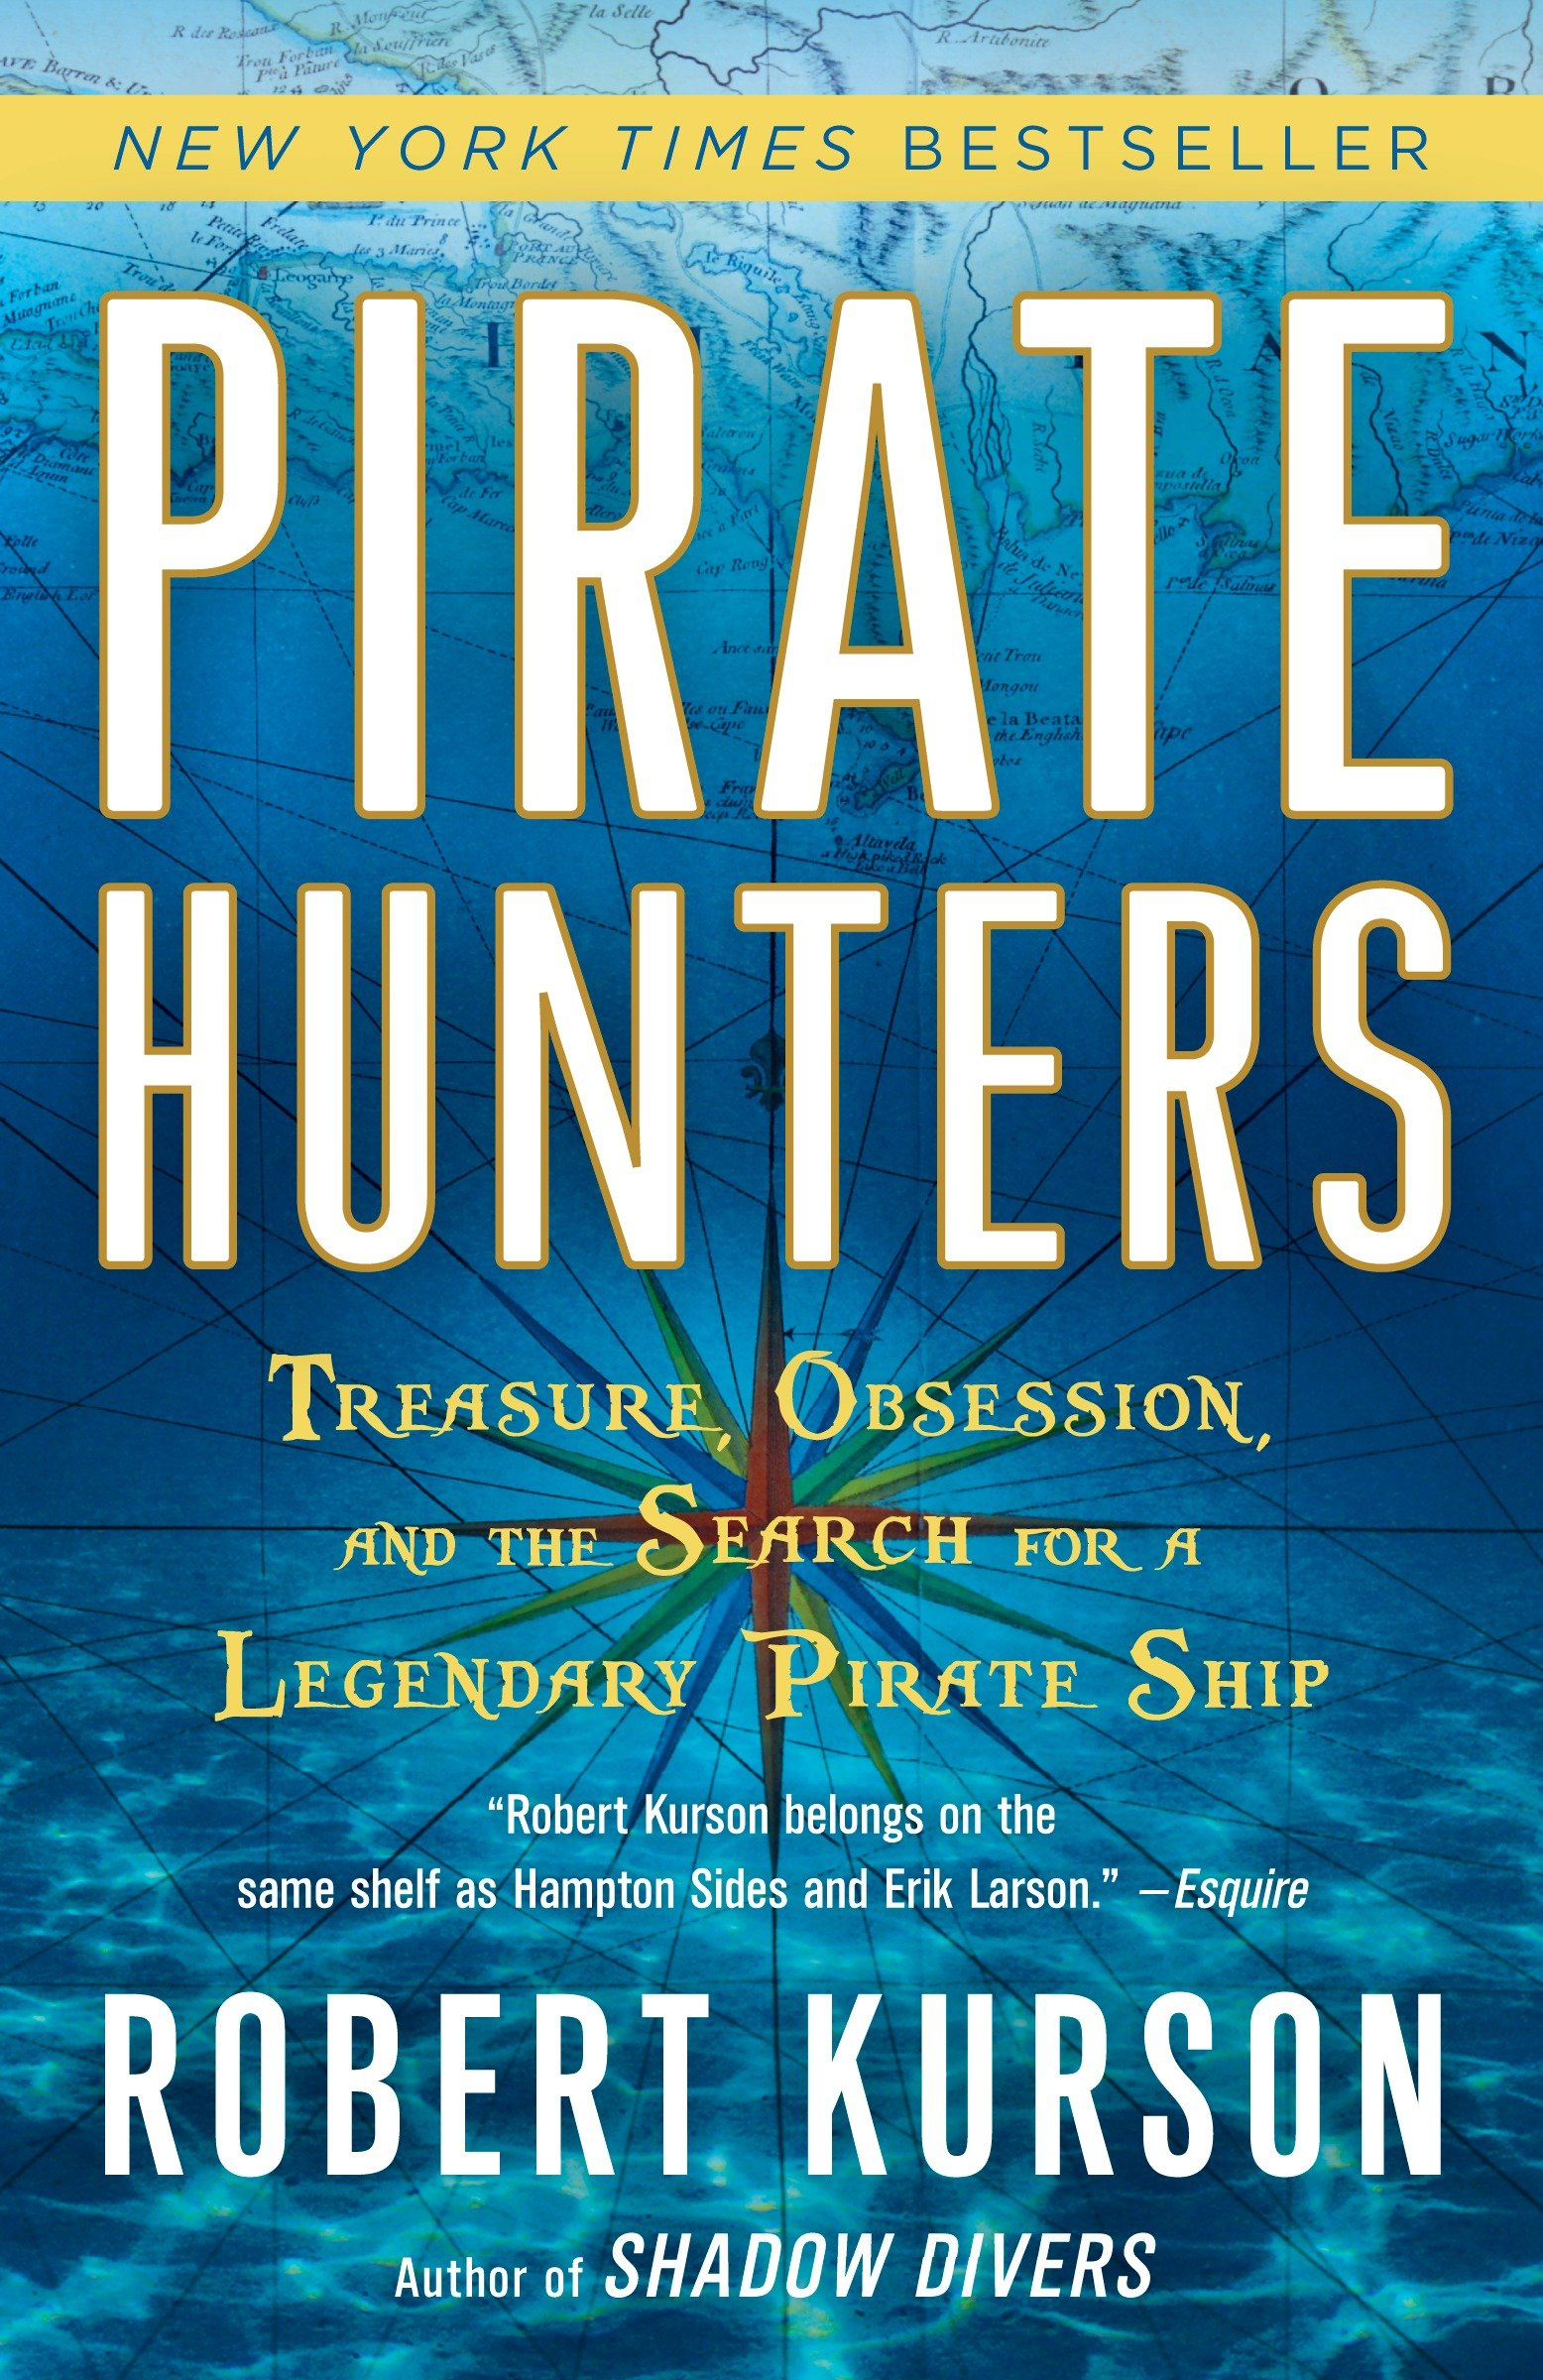 Pirate Hunters Treasure, Obsession, and the Search for a Legendary Pirate Ship